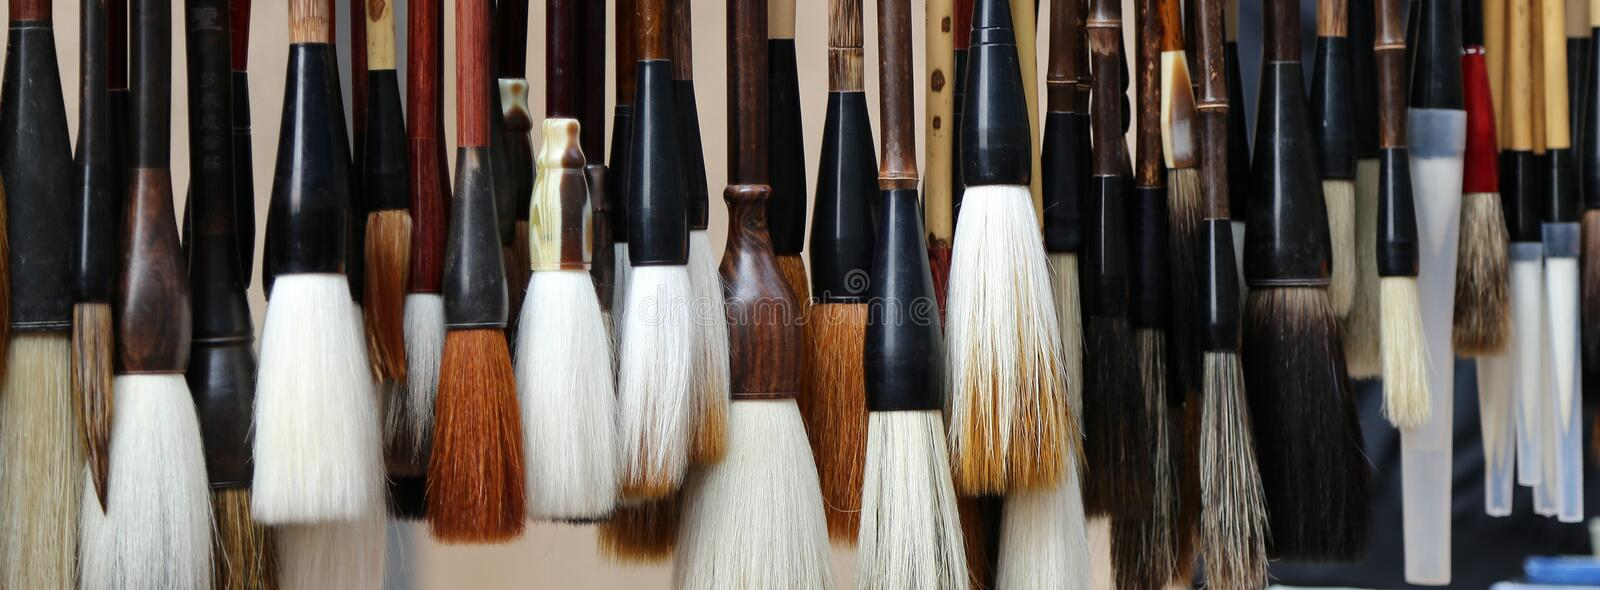 Chinese calligraphie brushes, Xian (Sian, Xi'an), Shaanxi province, China.  royalty free stock images